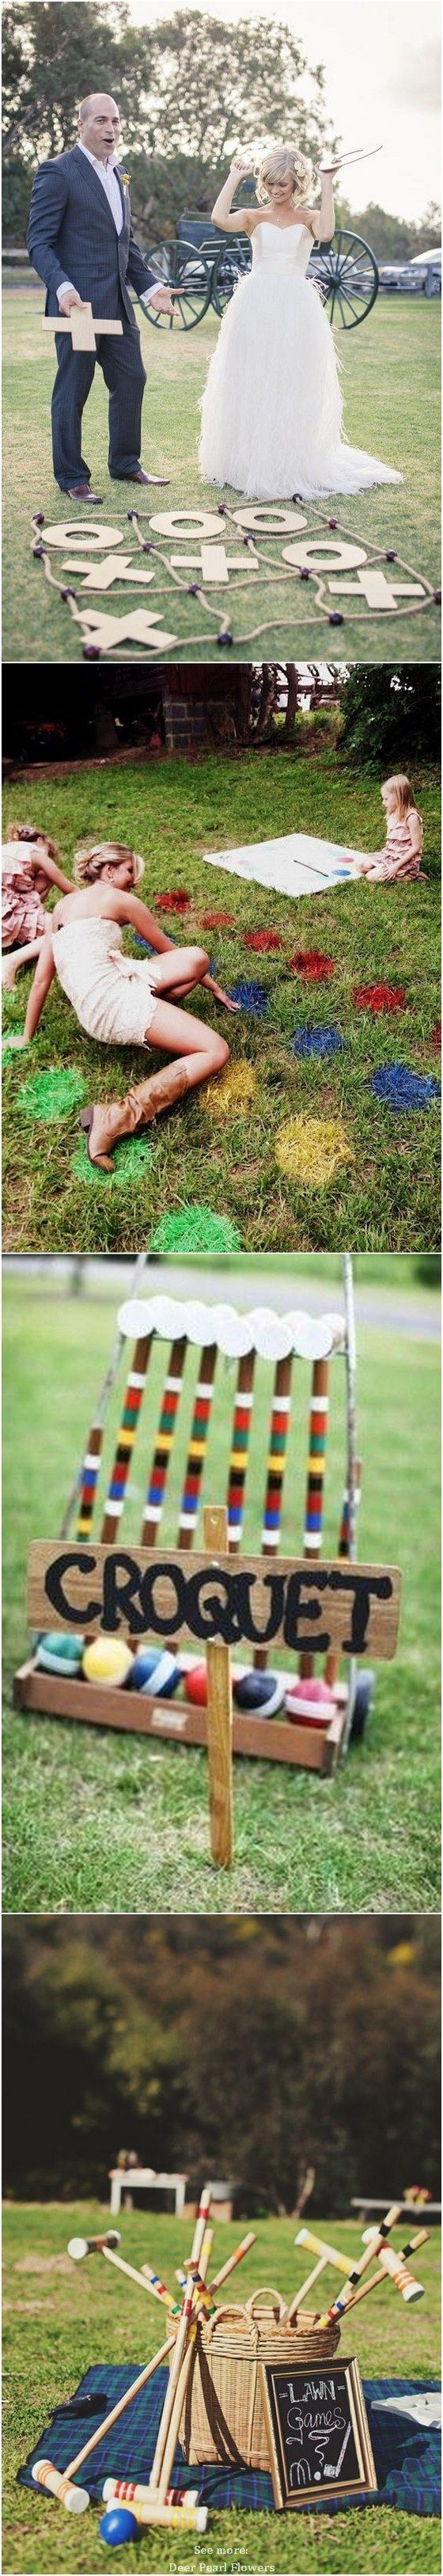 fun outdoor wedding reception lawn game ideas lawn games game